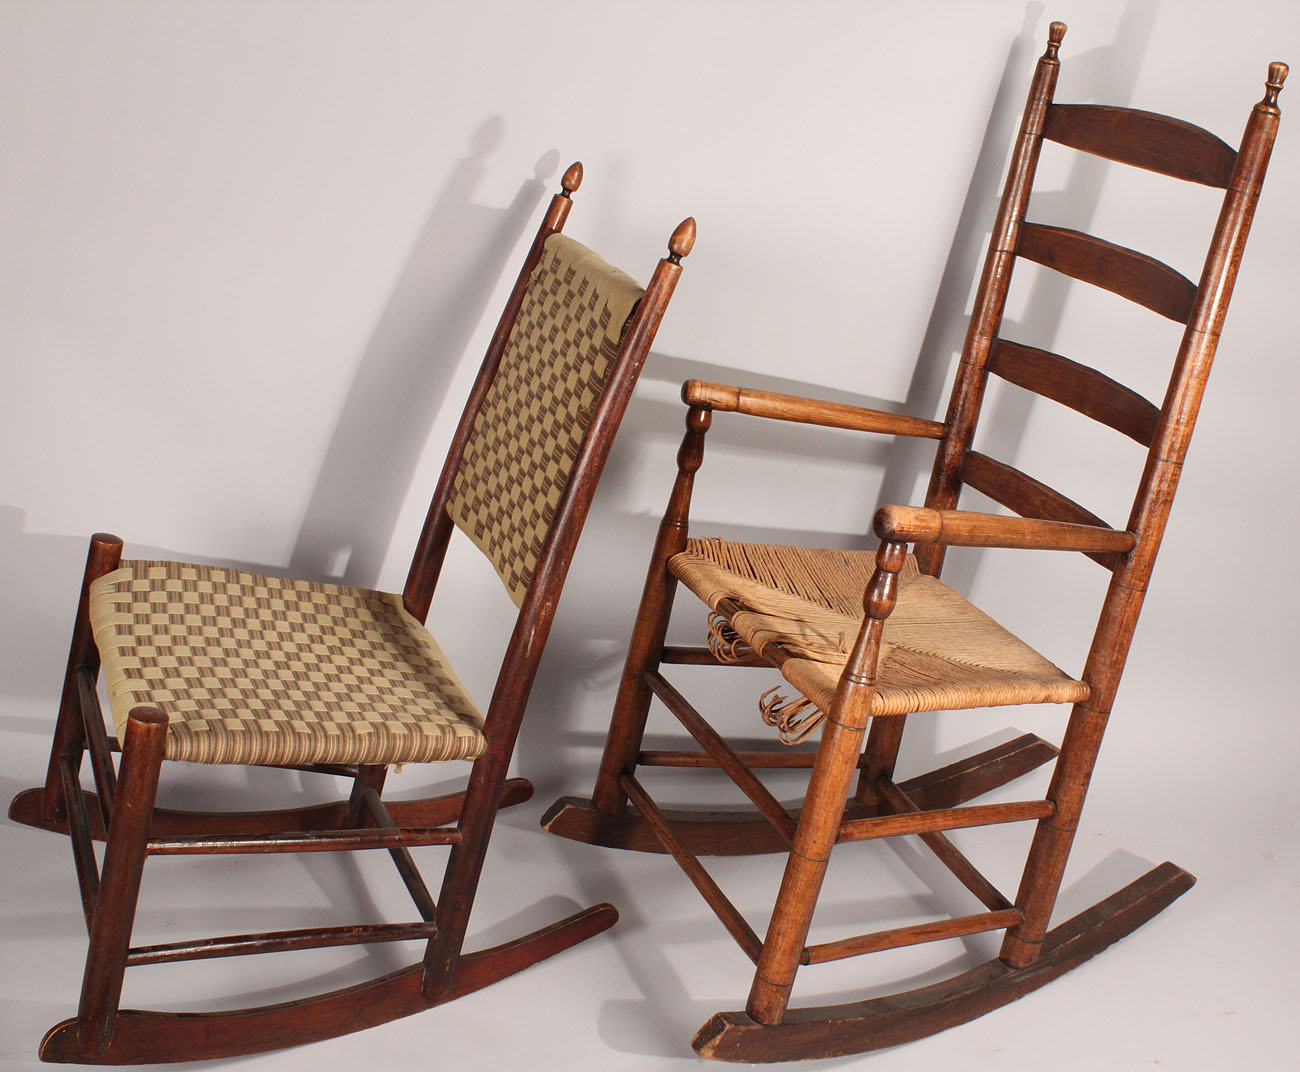 Lot 449: 2 Rocking Chairs, Shaker And Tennessee - Antique Shaker Rocking  Chair Antique - Antique Shaker Rocking Chair Antique Furniture